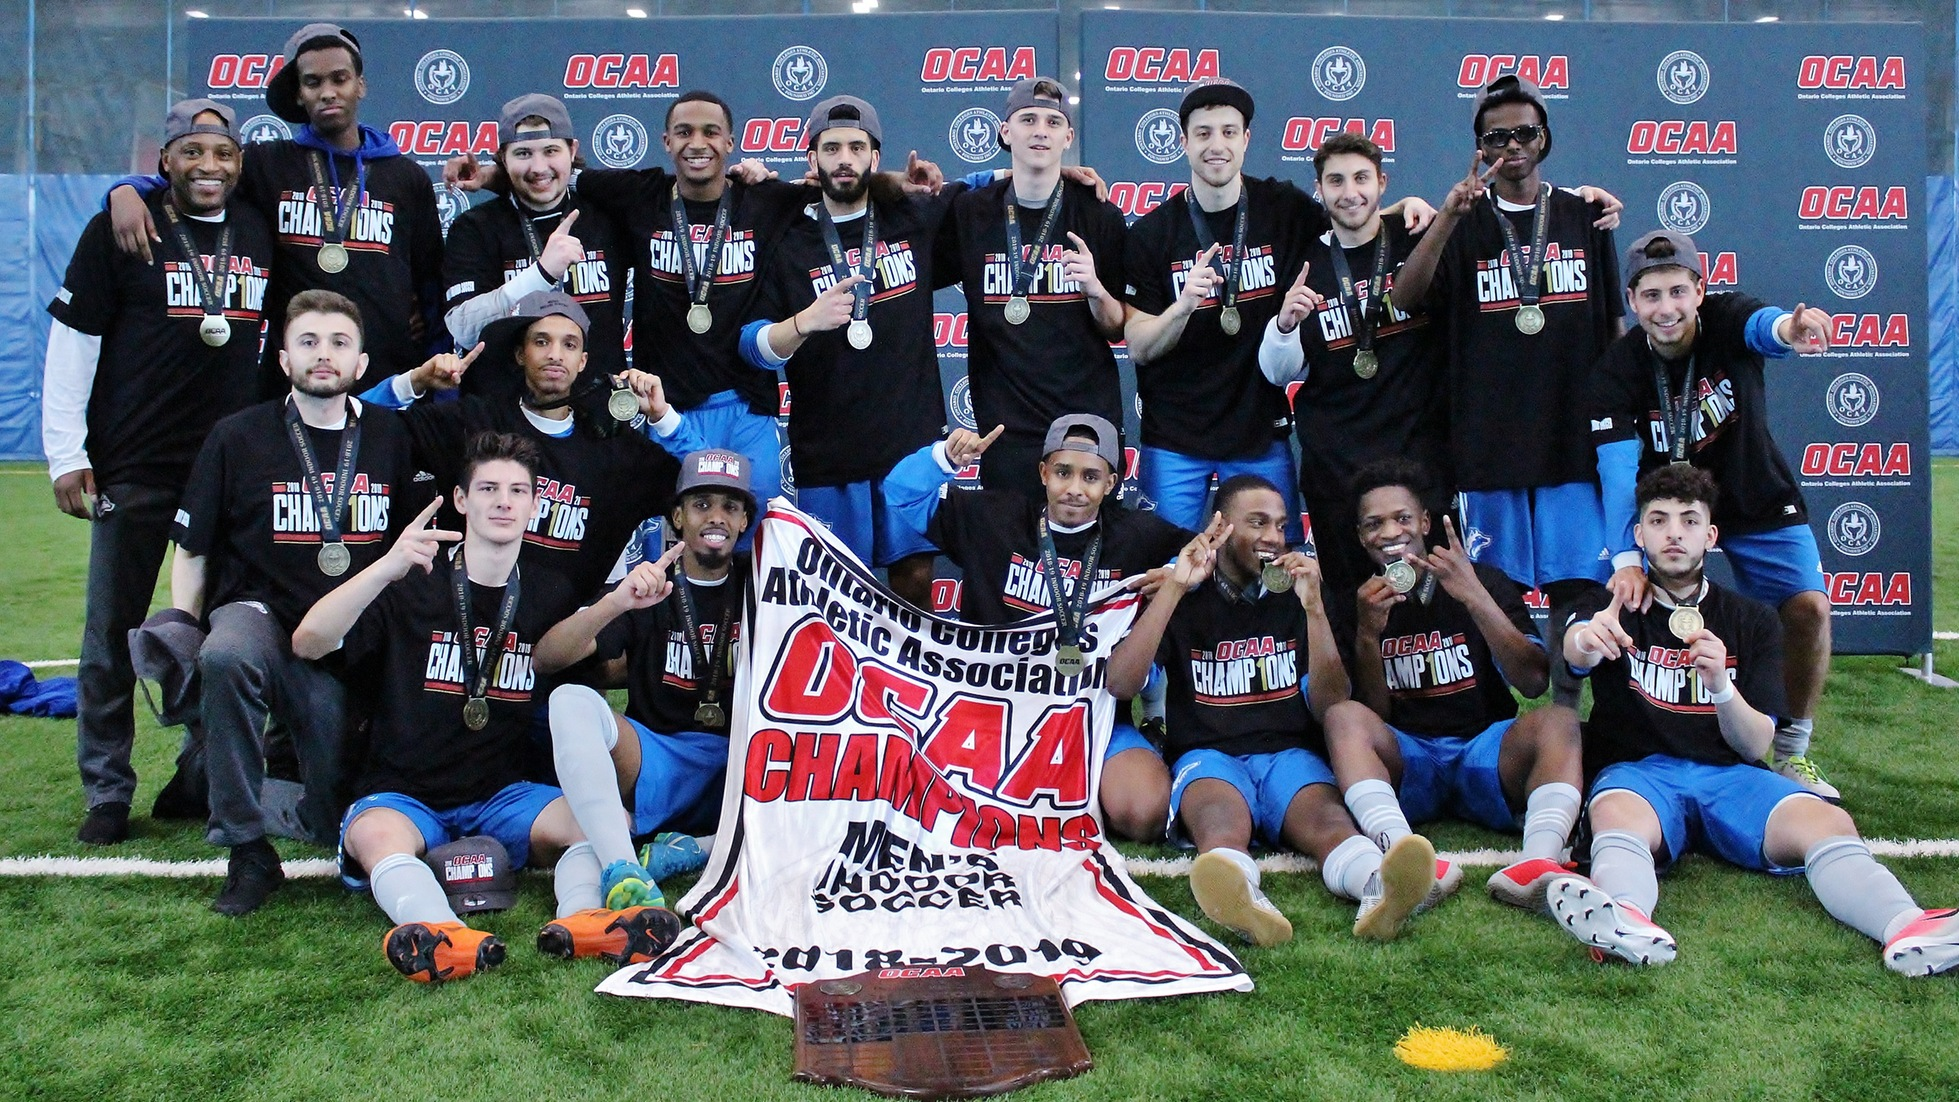 GEORGE BROWN COLLEGE WINS 2019 OCAA MEN'S INDOOR SOCCER CHAMPIONSHIPS